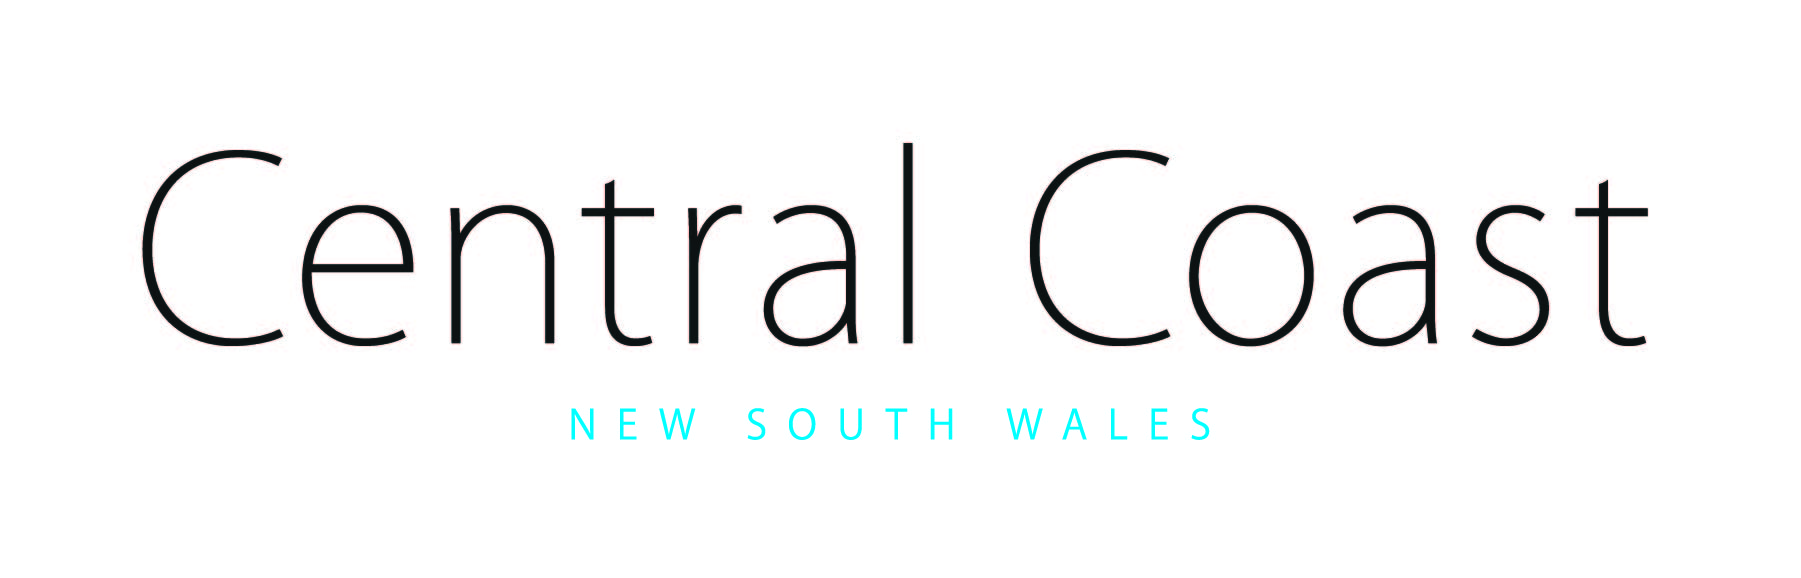 Central Coast Logo Primary Logo Colour